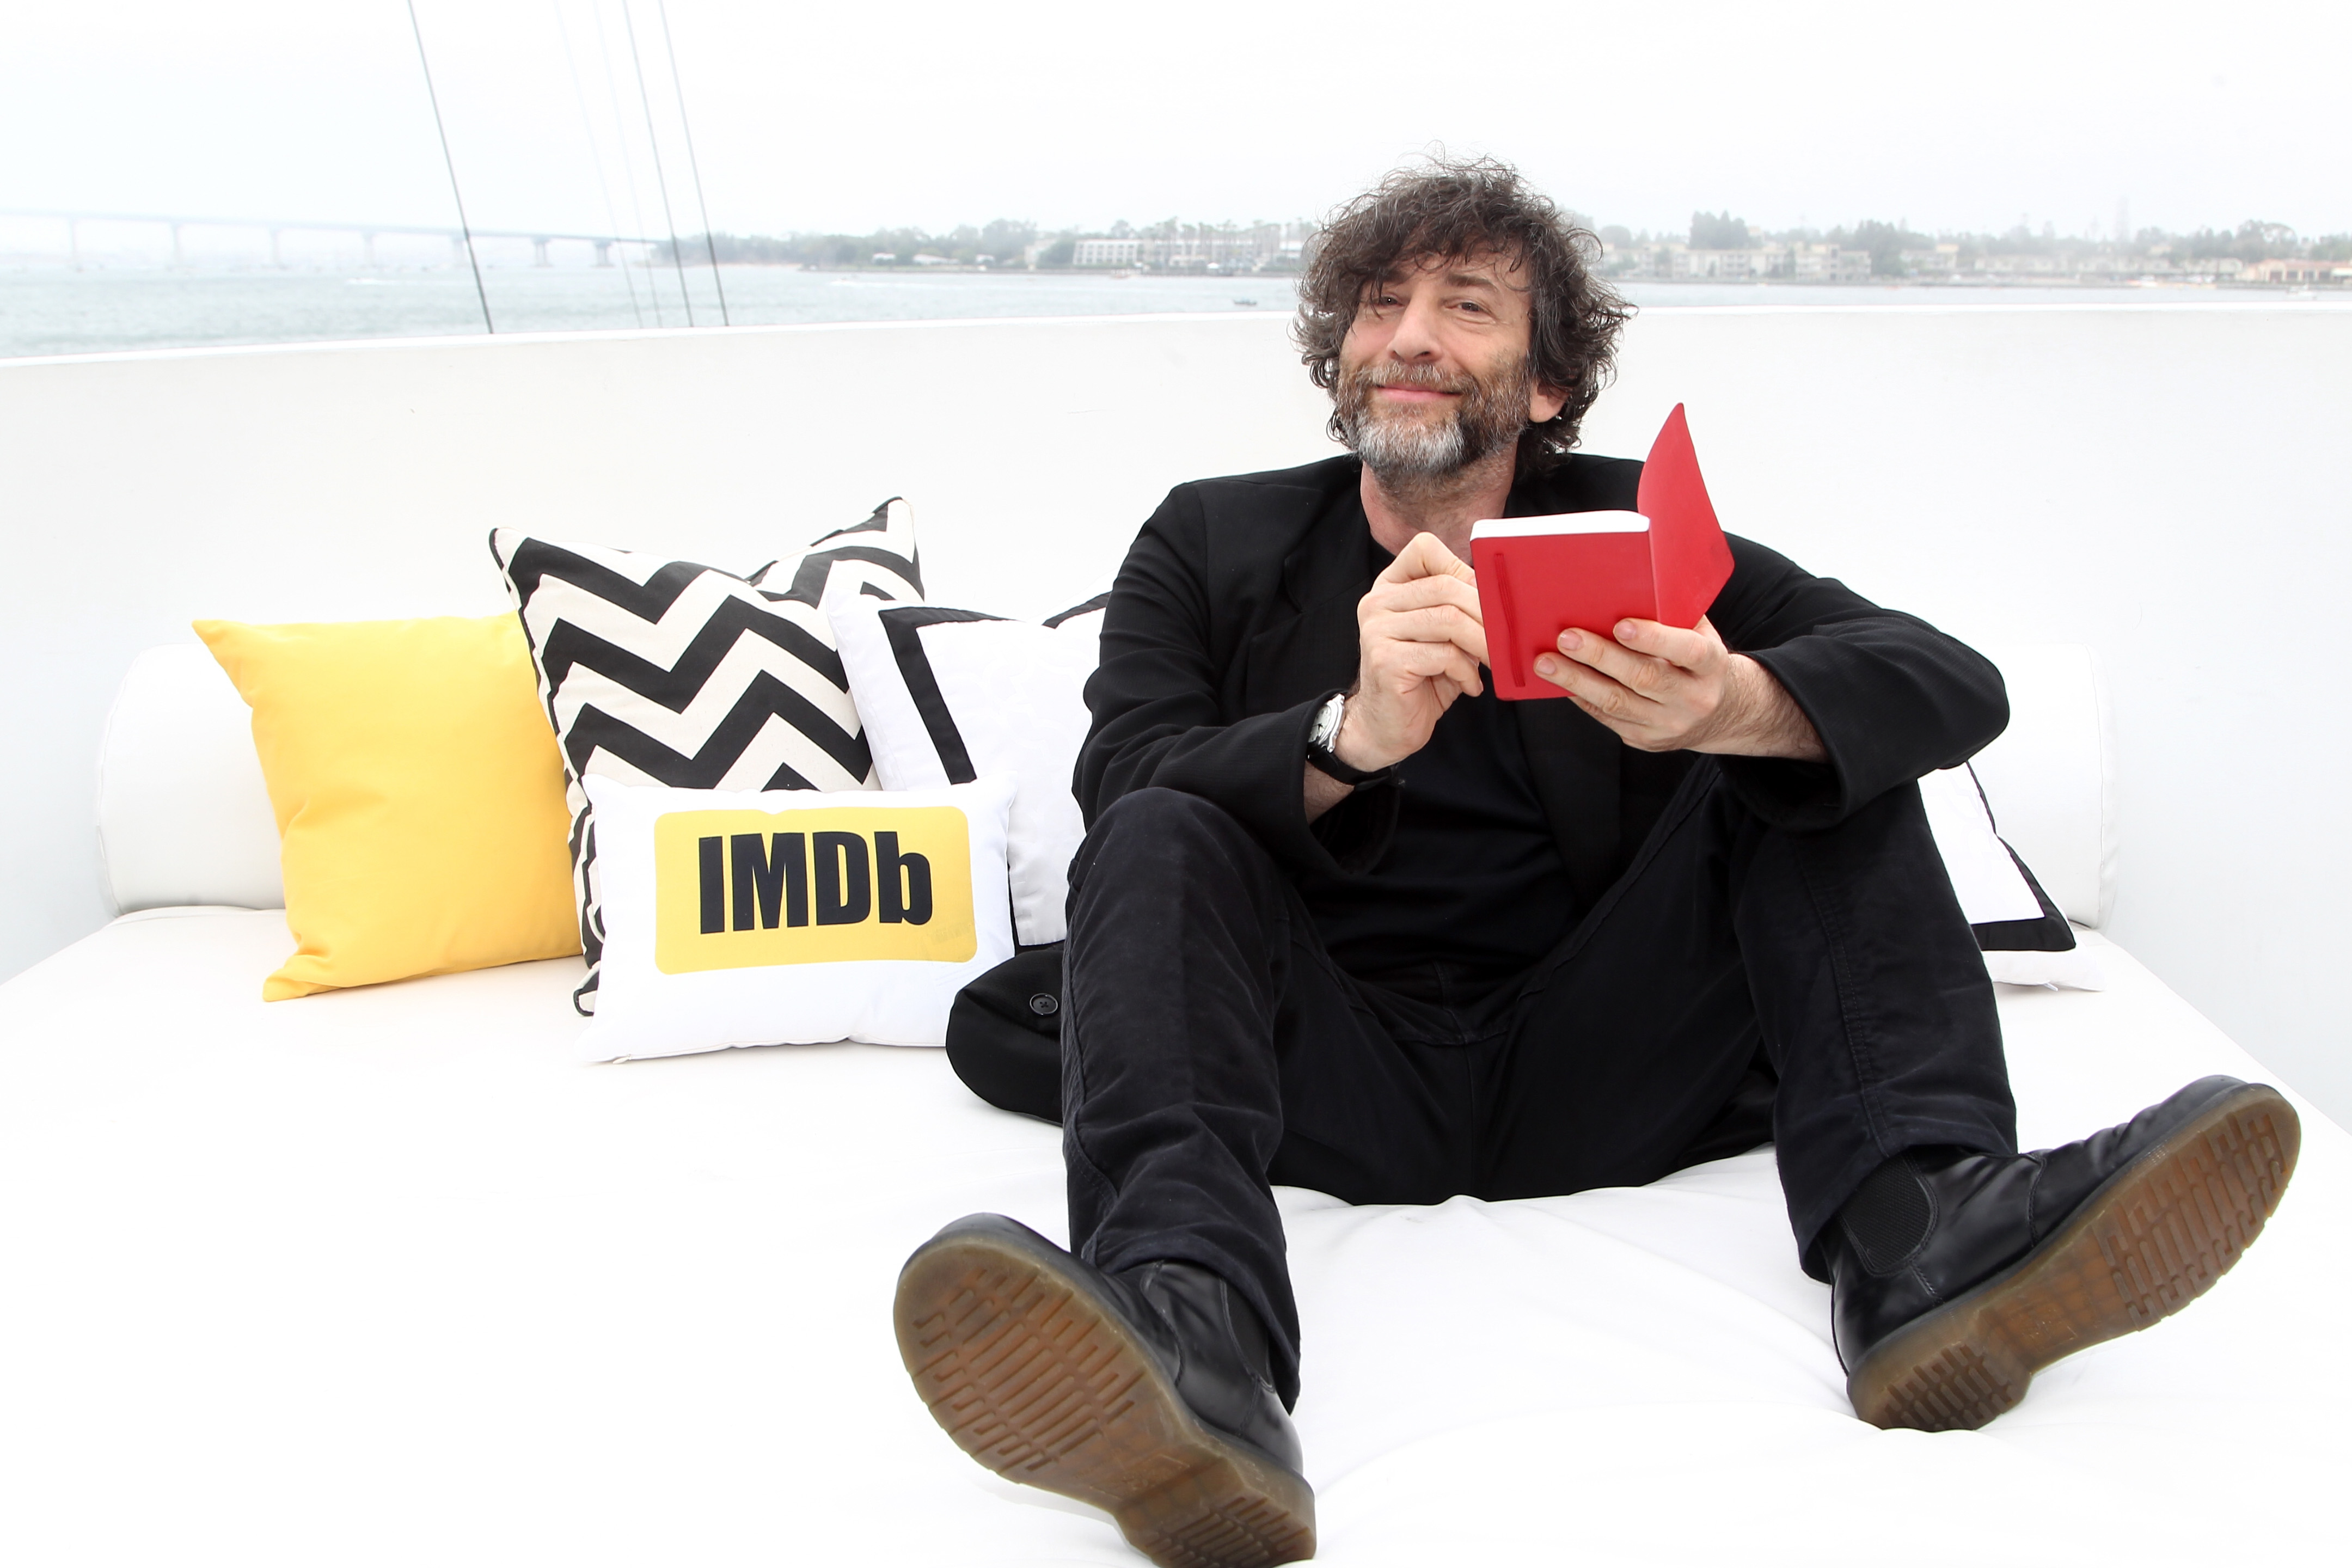 Writer Neil Gaiman attends Day Three at the IMDb Yacht at San Diego, California Comic-Con 2016. Source: (Photo by Tommaso Boddi/Getty Images for IMDb)